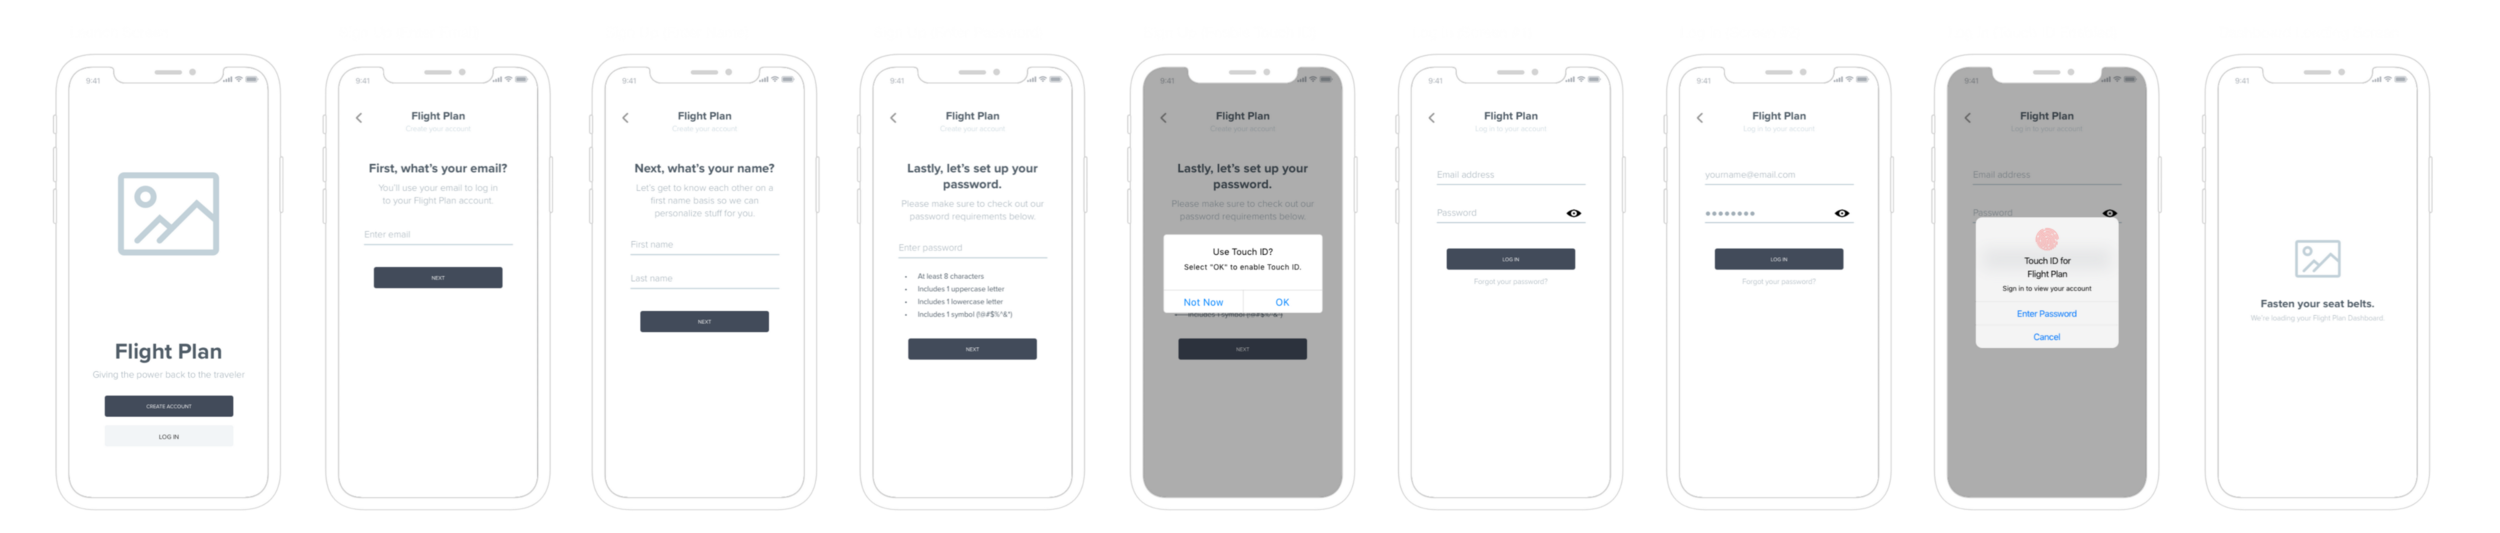 From left to right: launch screen, creating an account, logging in, loading Dashboard